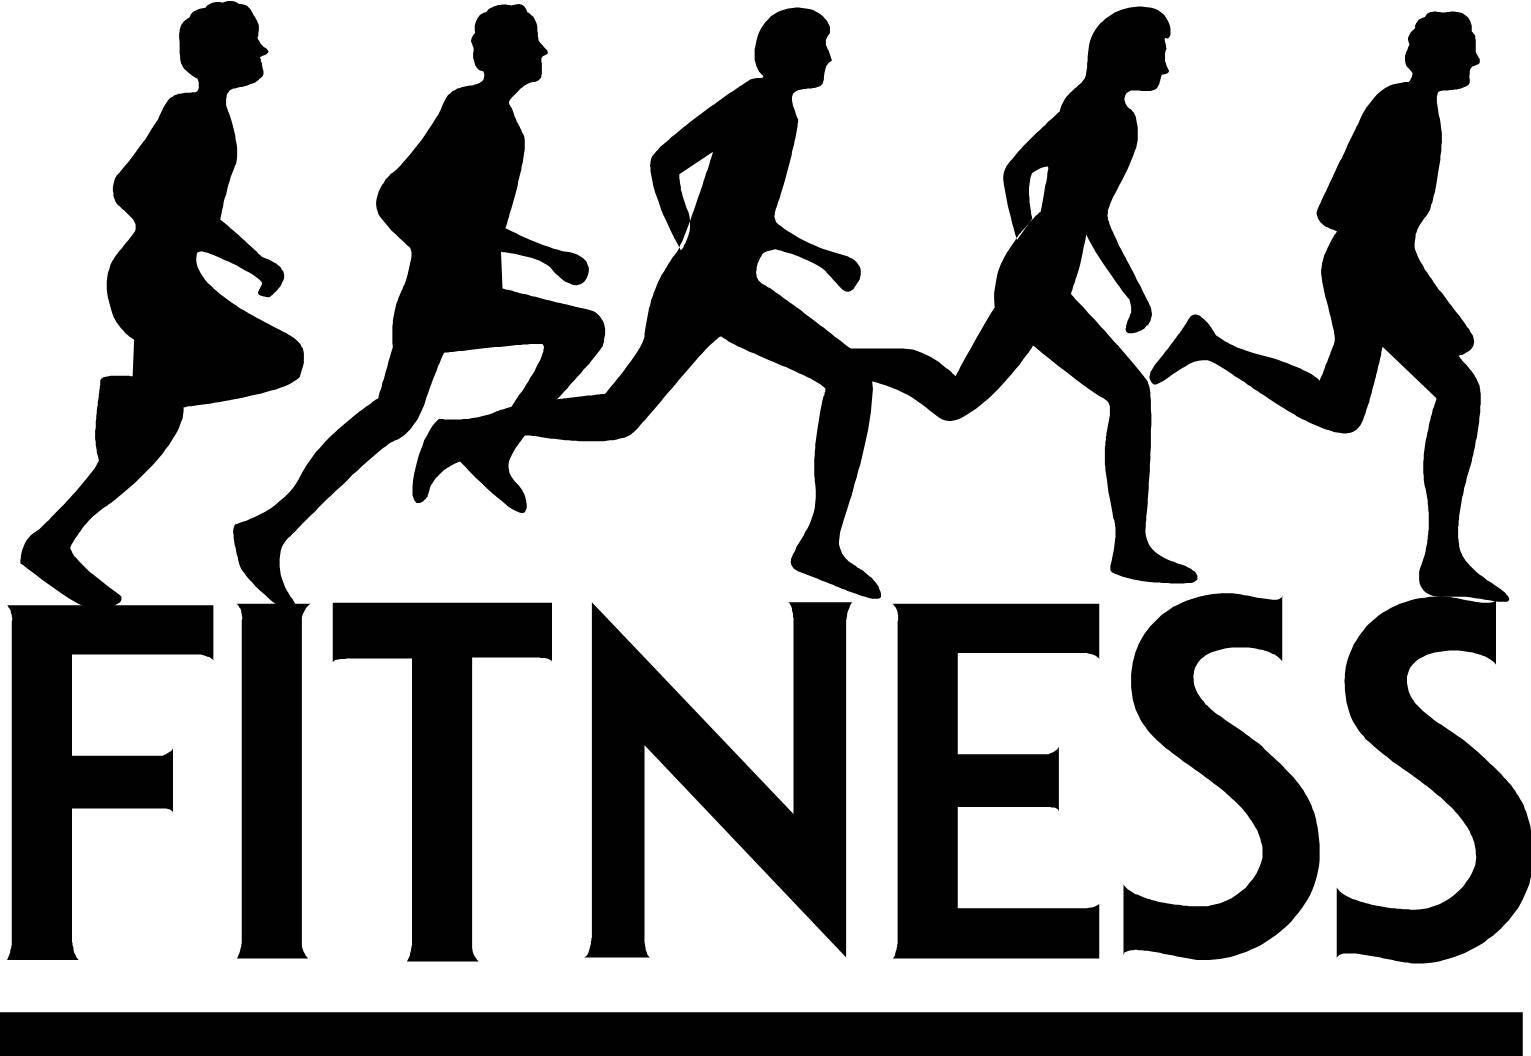 Workout clipart physical fitness test. The importance of activity